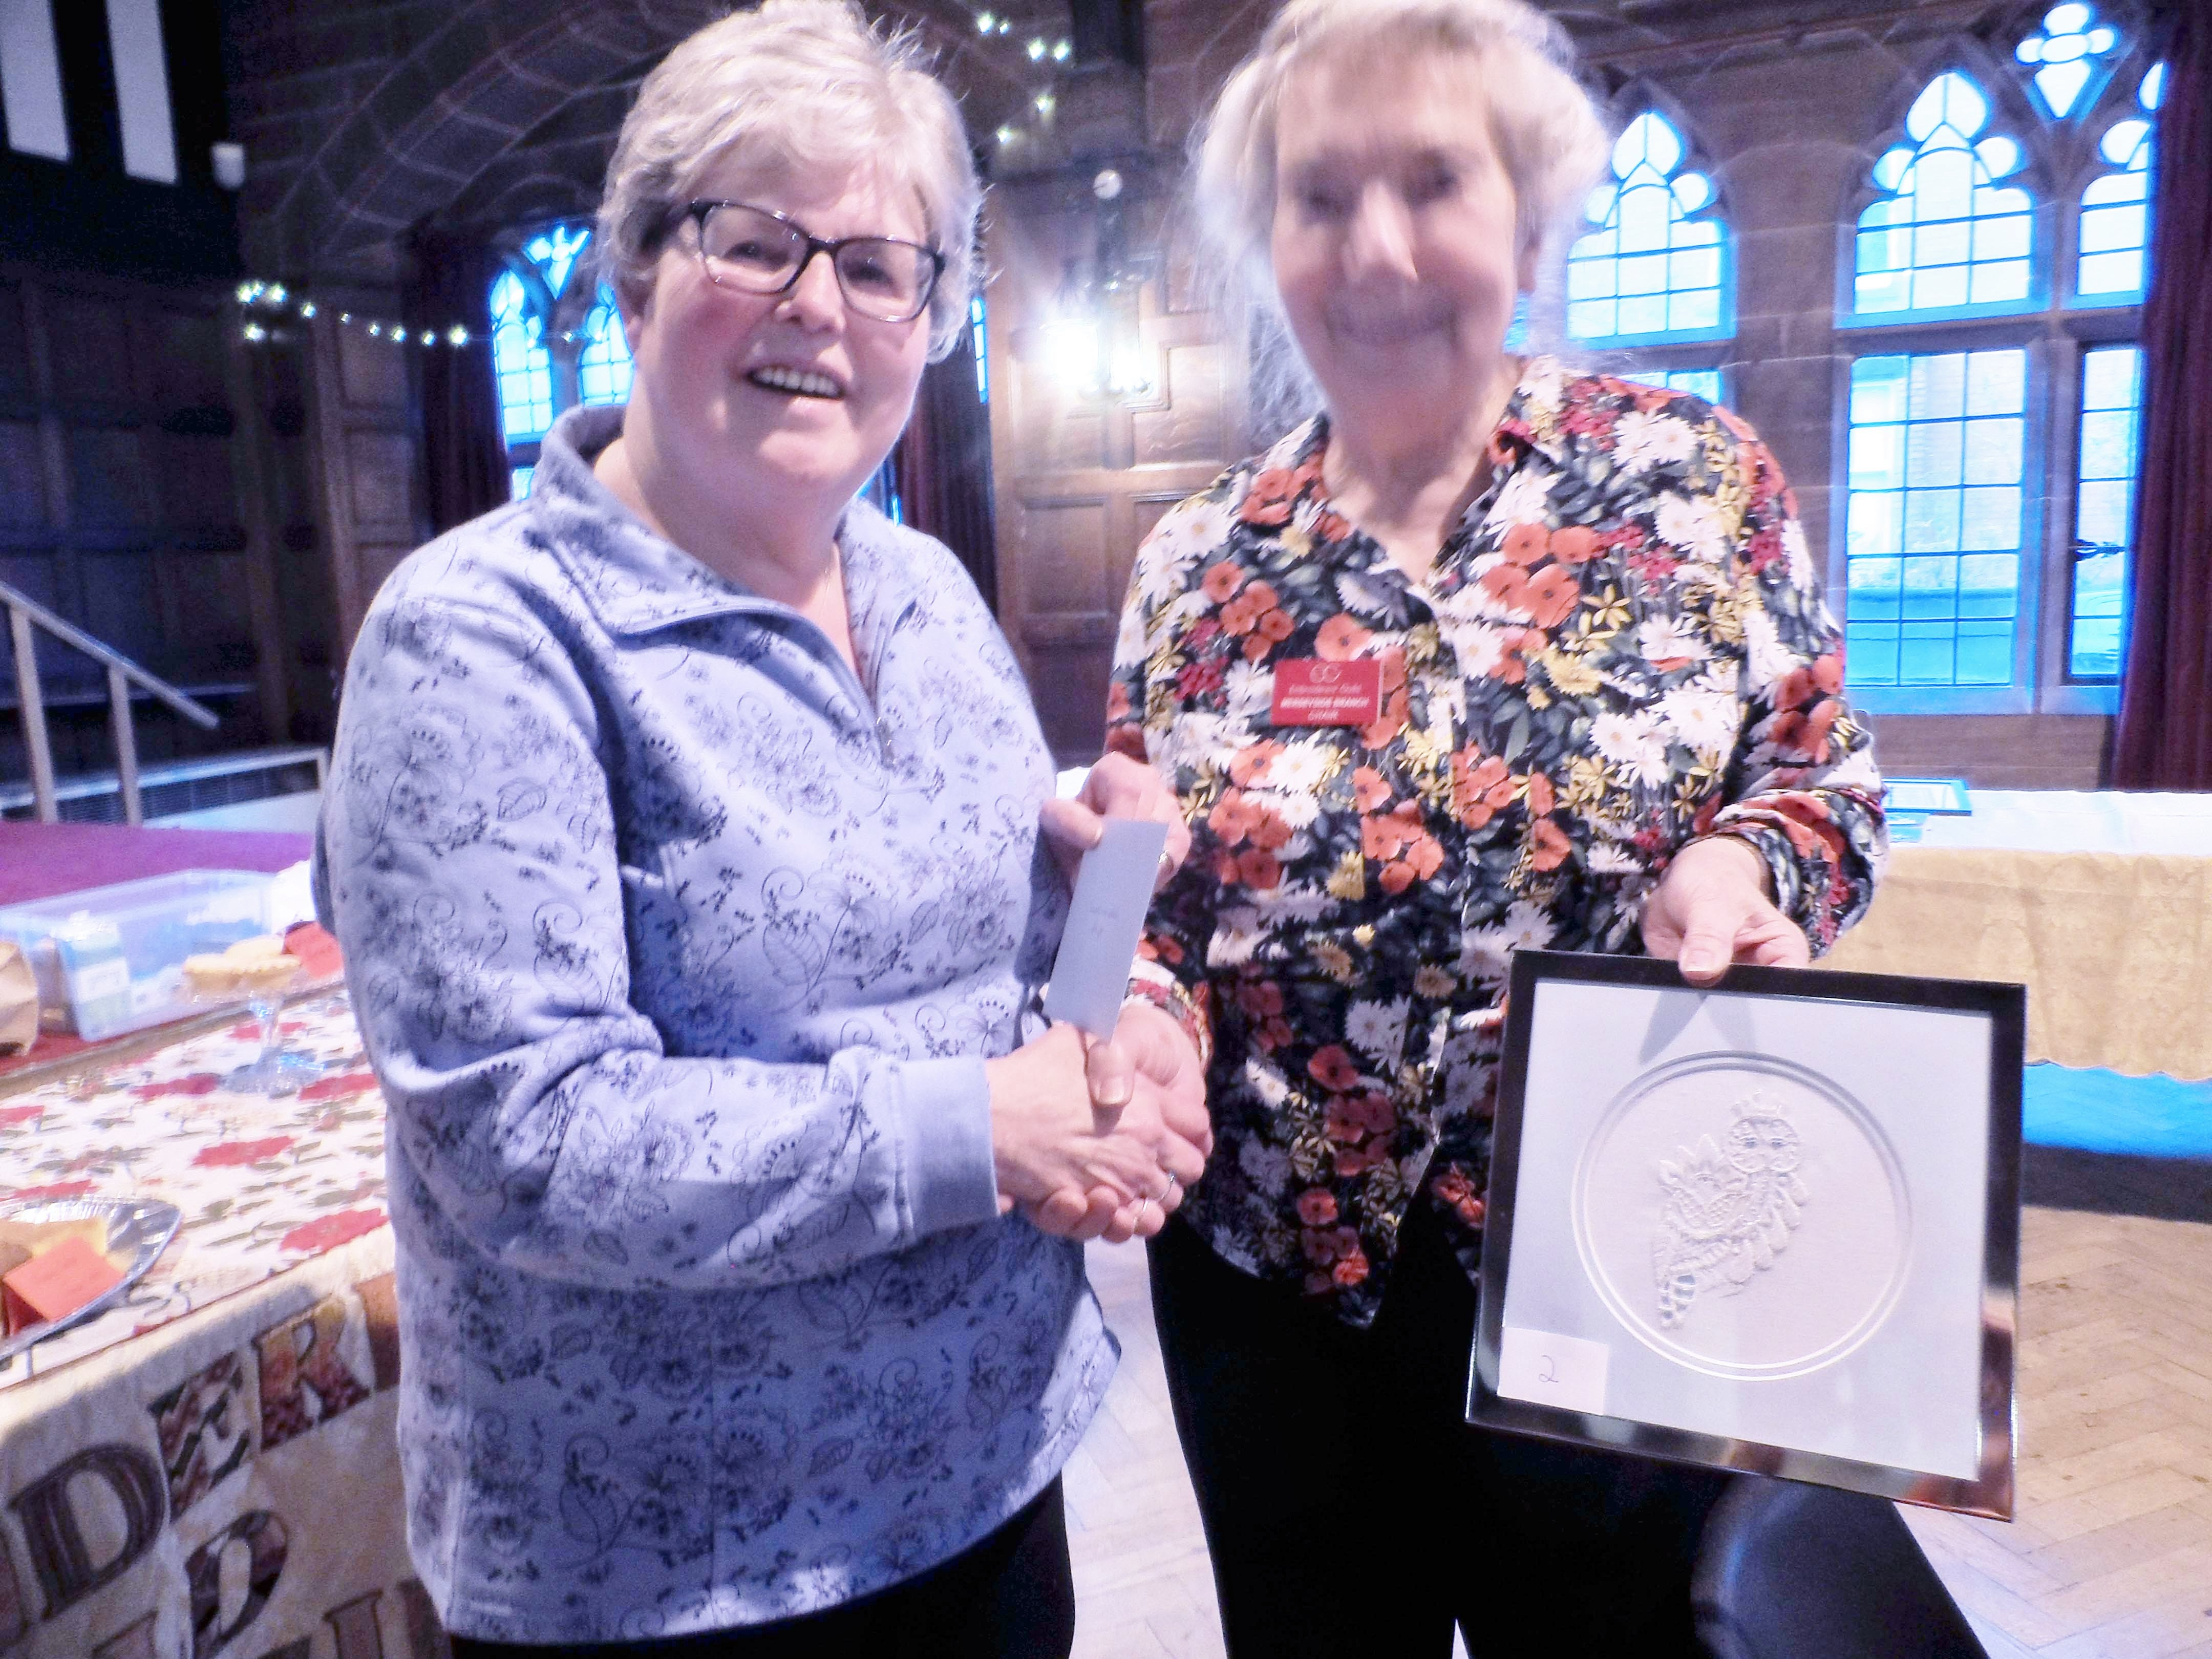 Hilary McCormack, winner of 2018 Traditional Stitch comp. Christmas Fun Day 2018